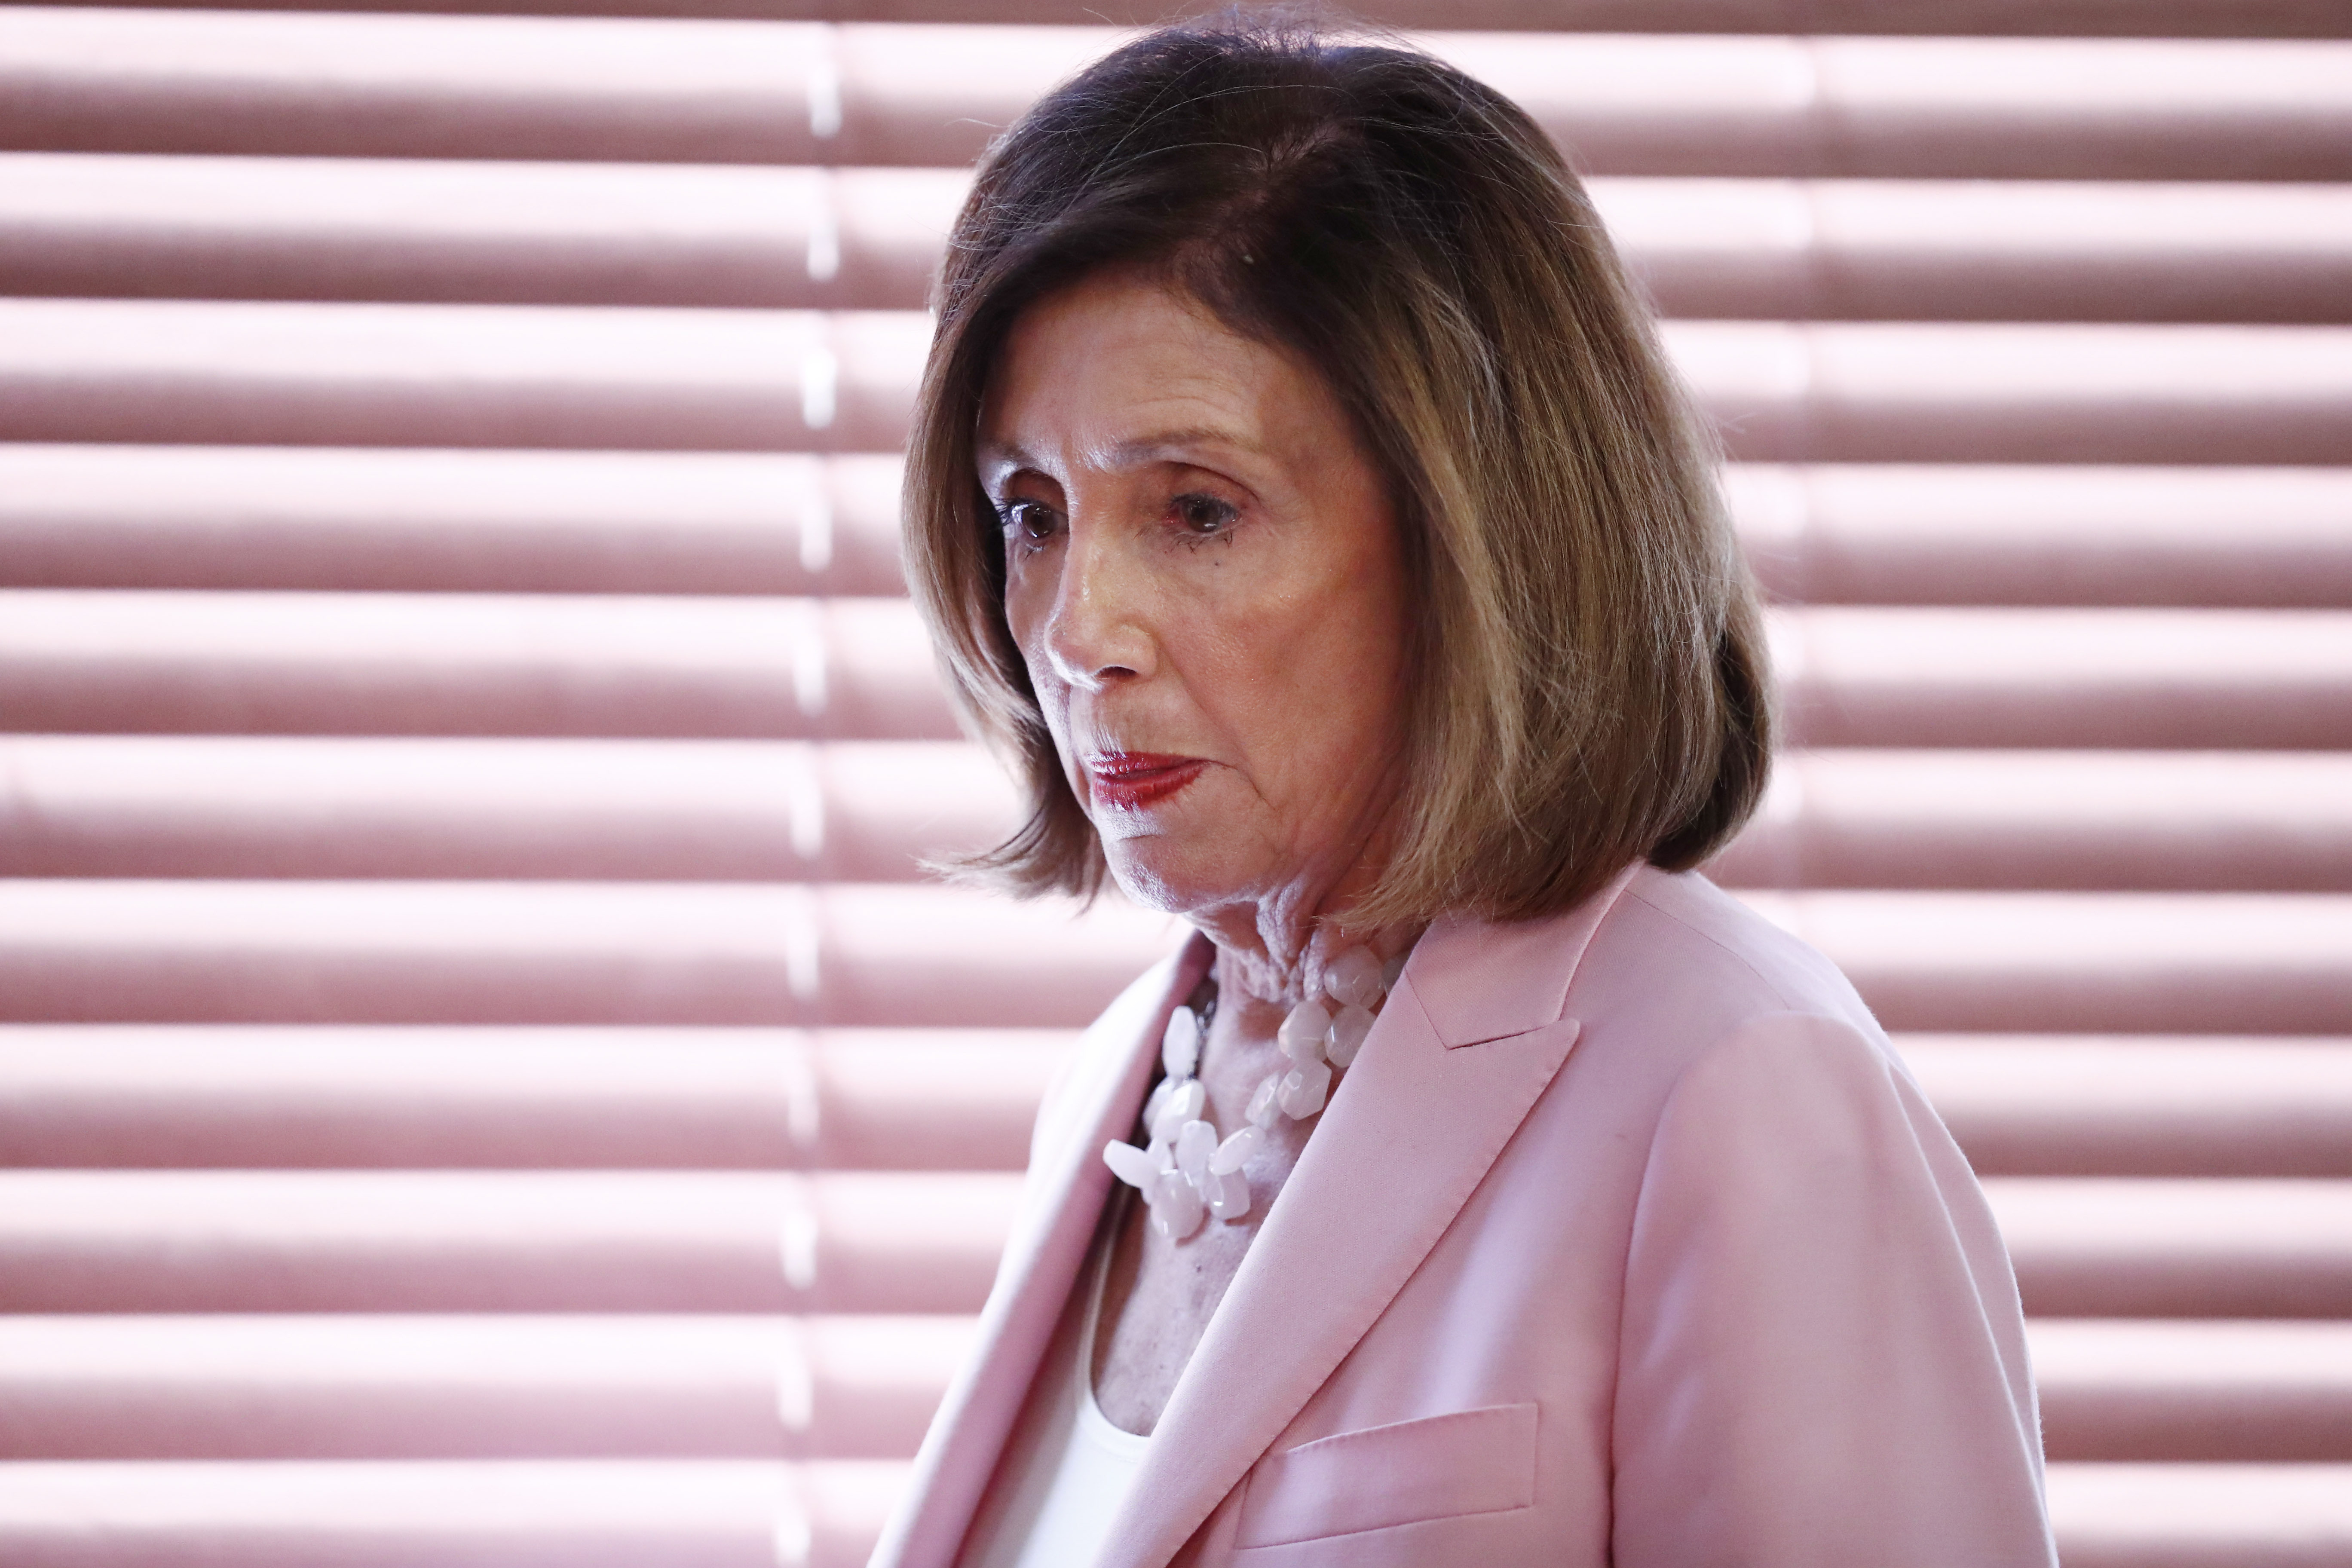 Pelosi faces serious legal challenges to 'casual' impeachment inquiry